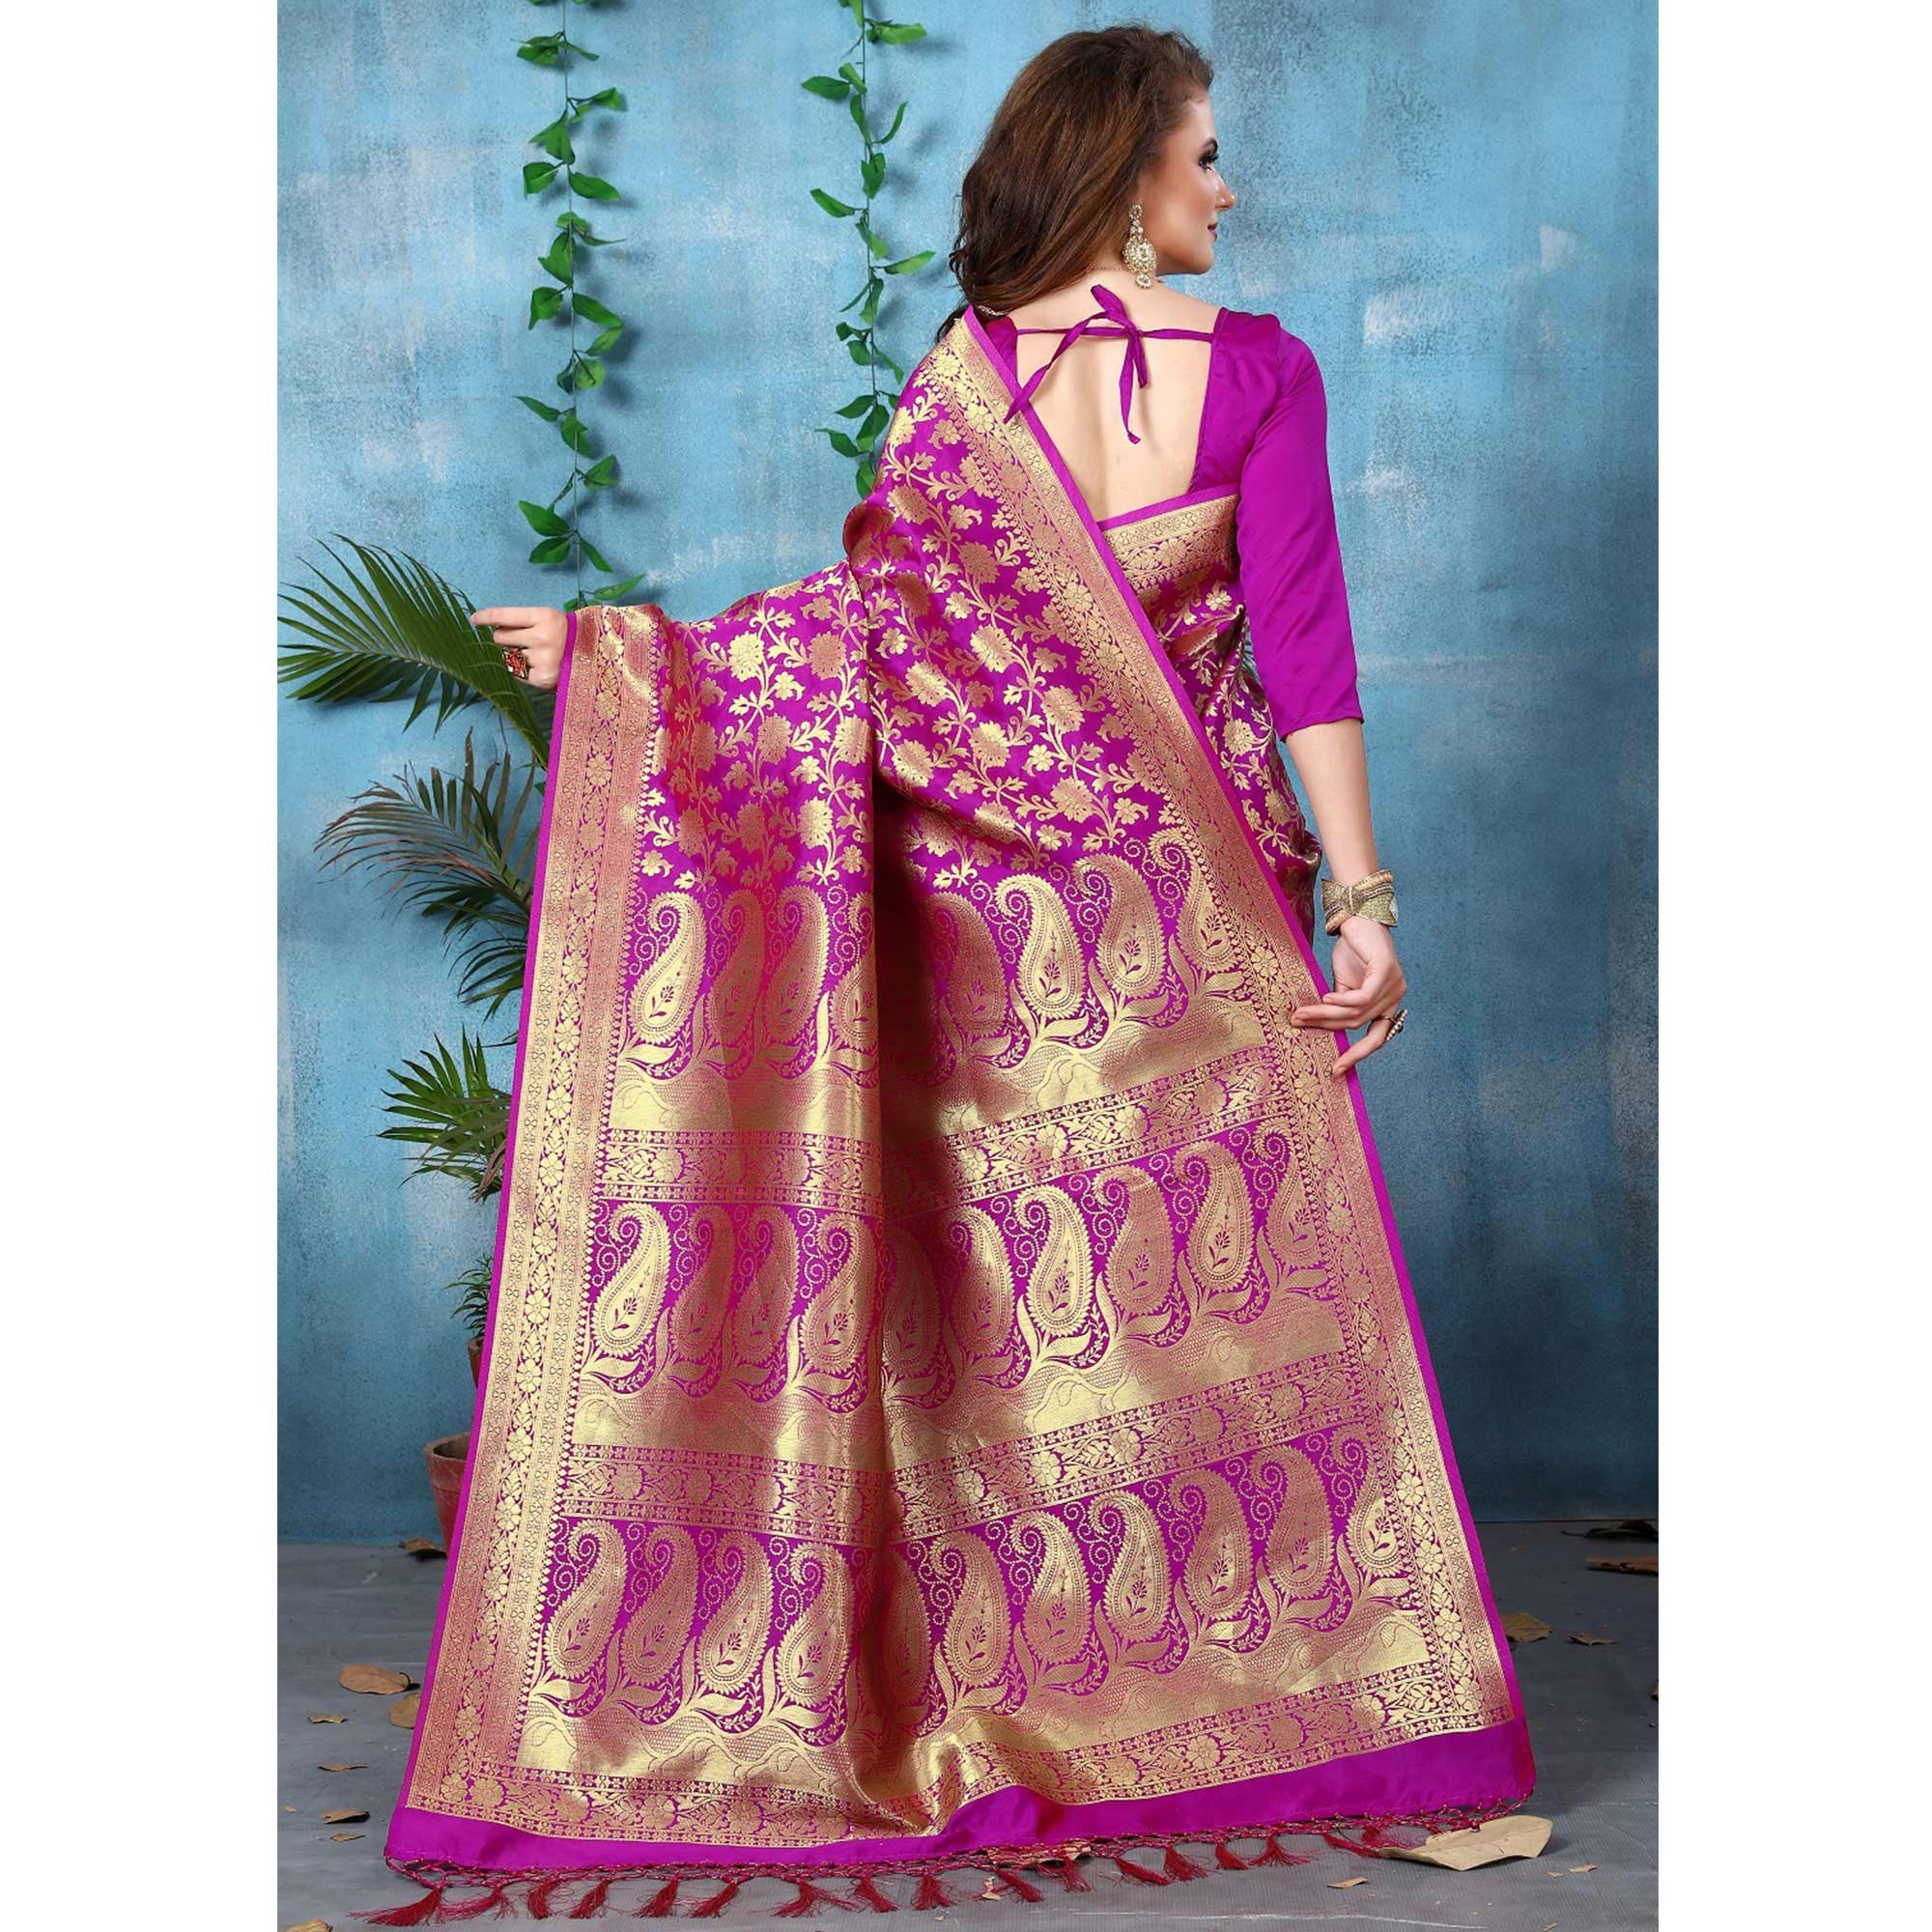 Refreshing Rani Pink Colored Festive Wear Woven Banarasi Silk Saree